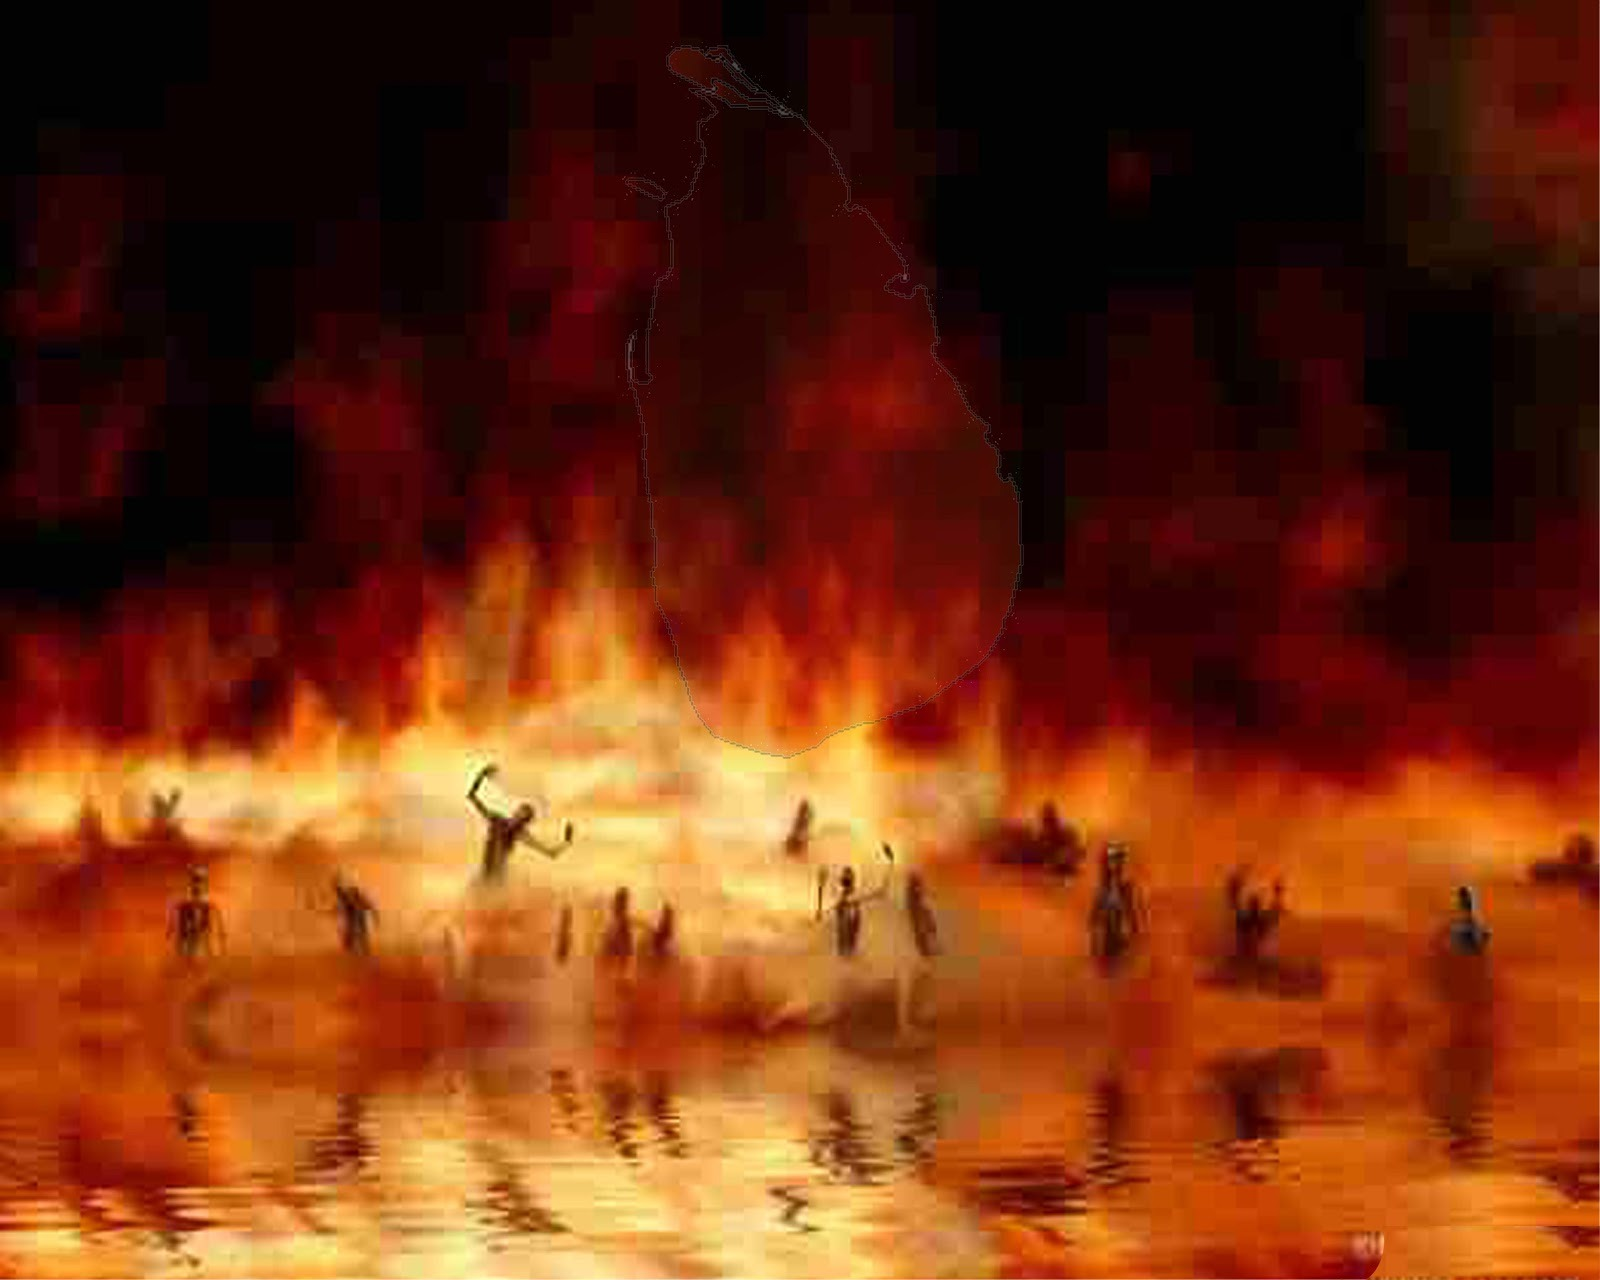 People Burning in Hell Fire 78.52 Kb